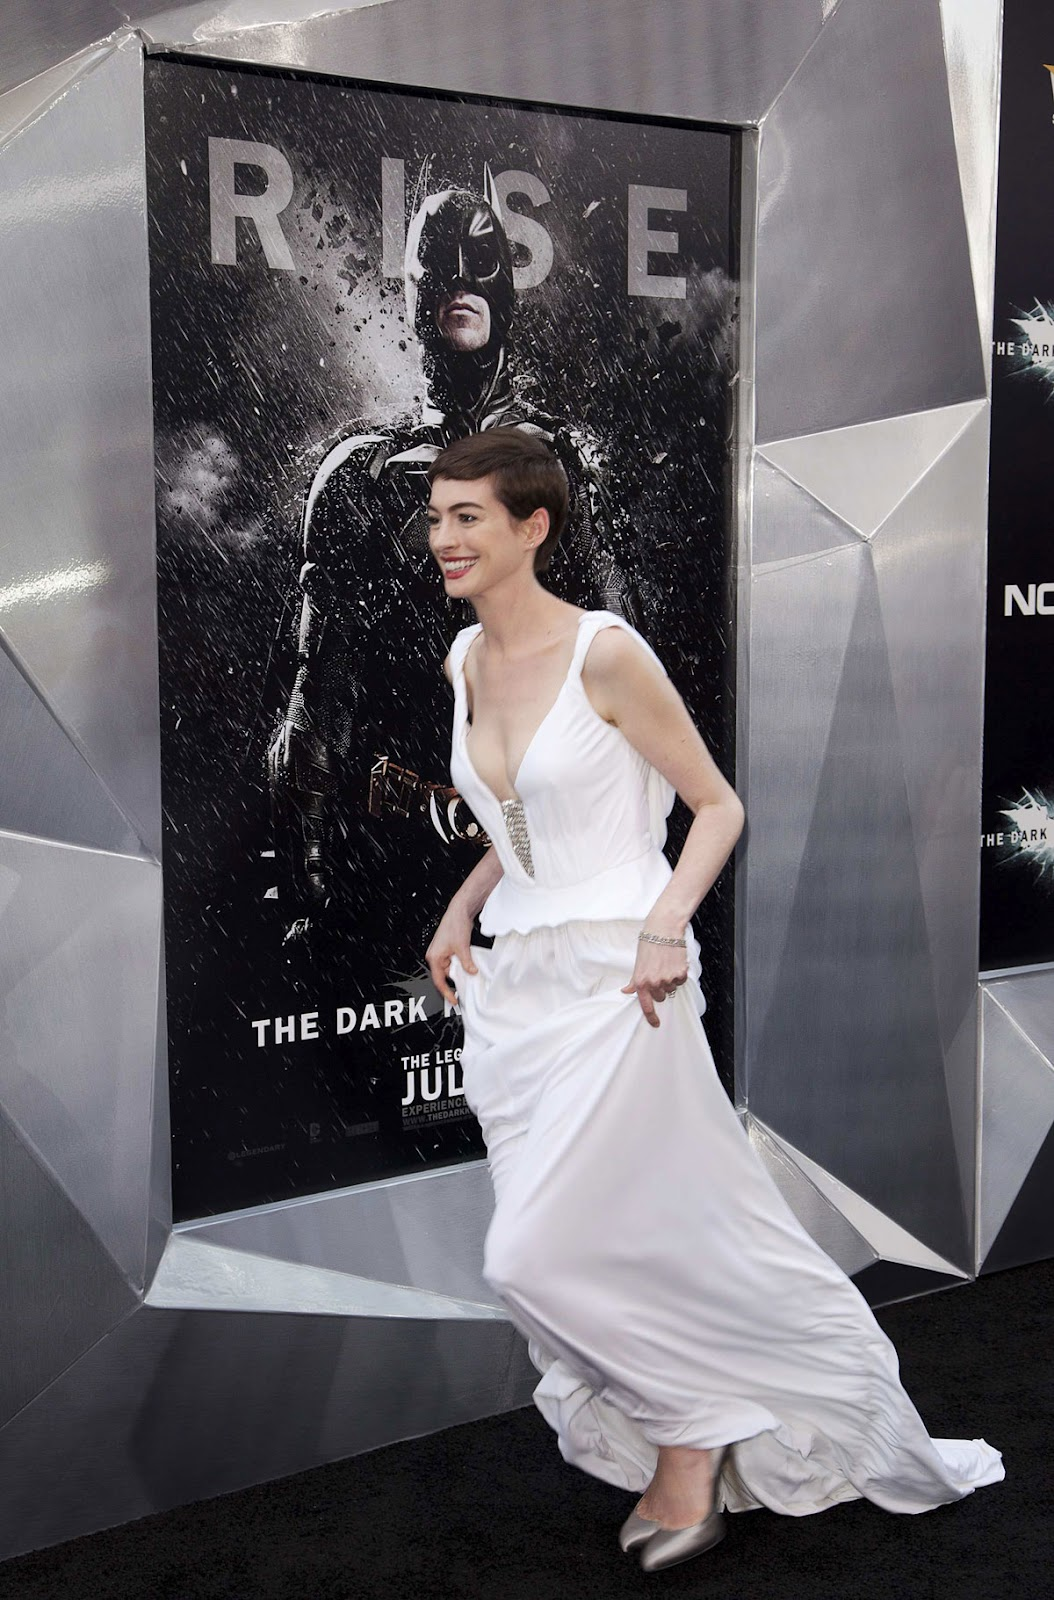 http://4.bp.blogspot.com/-43_qqpaEao0/UAVv7d4EMCI/AAAAAAAAd7M/YK2AiR6NUkw/s1600/ANNE-HATHAWAY-at-Dark-Knight-Rises-Premiere-in-New-York-3.jpg